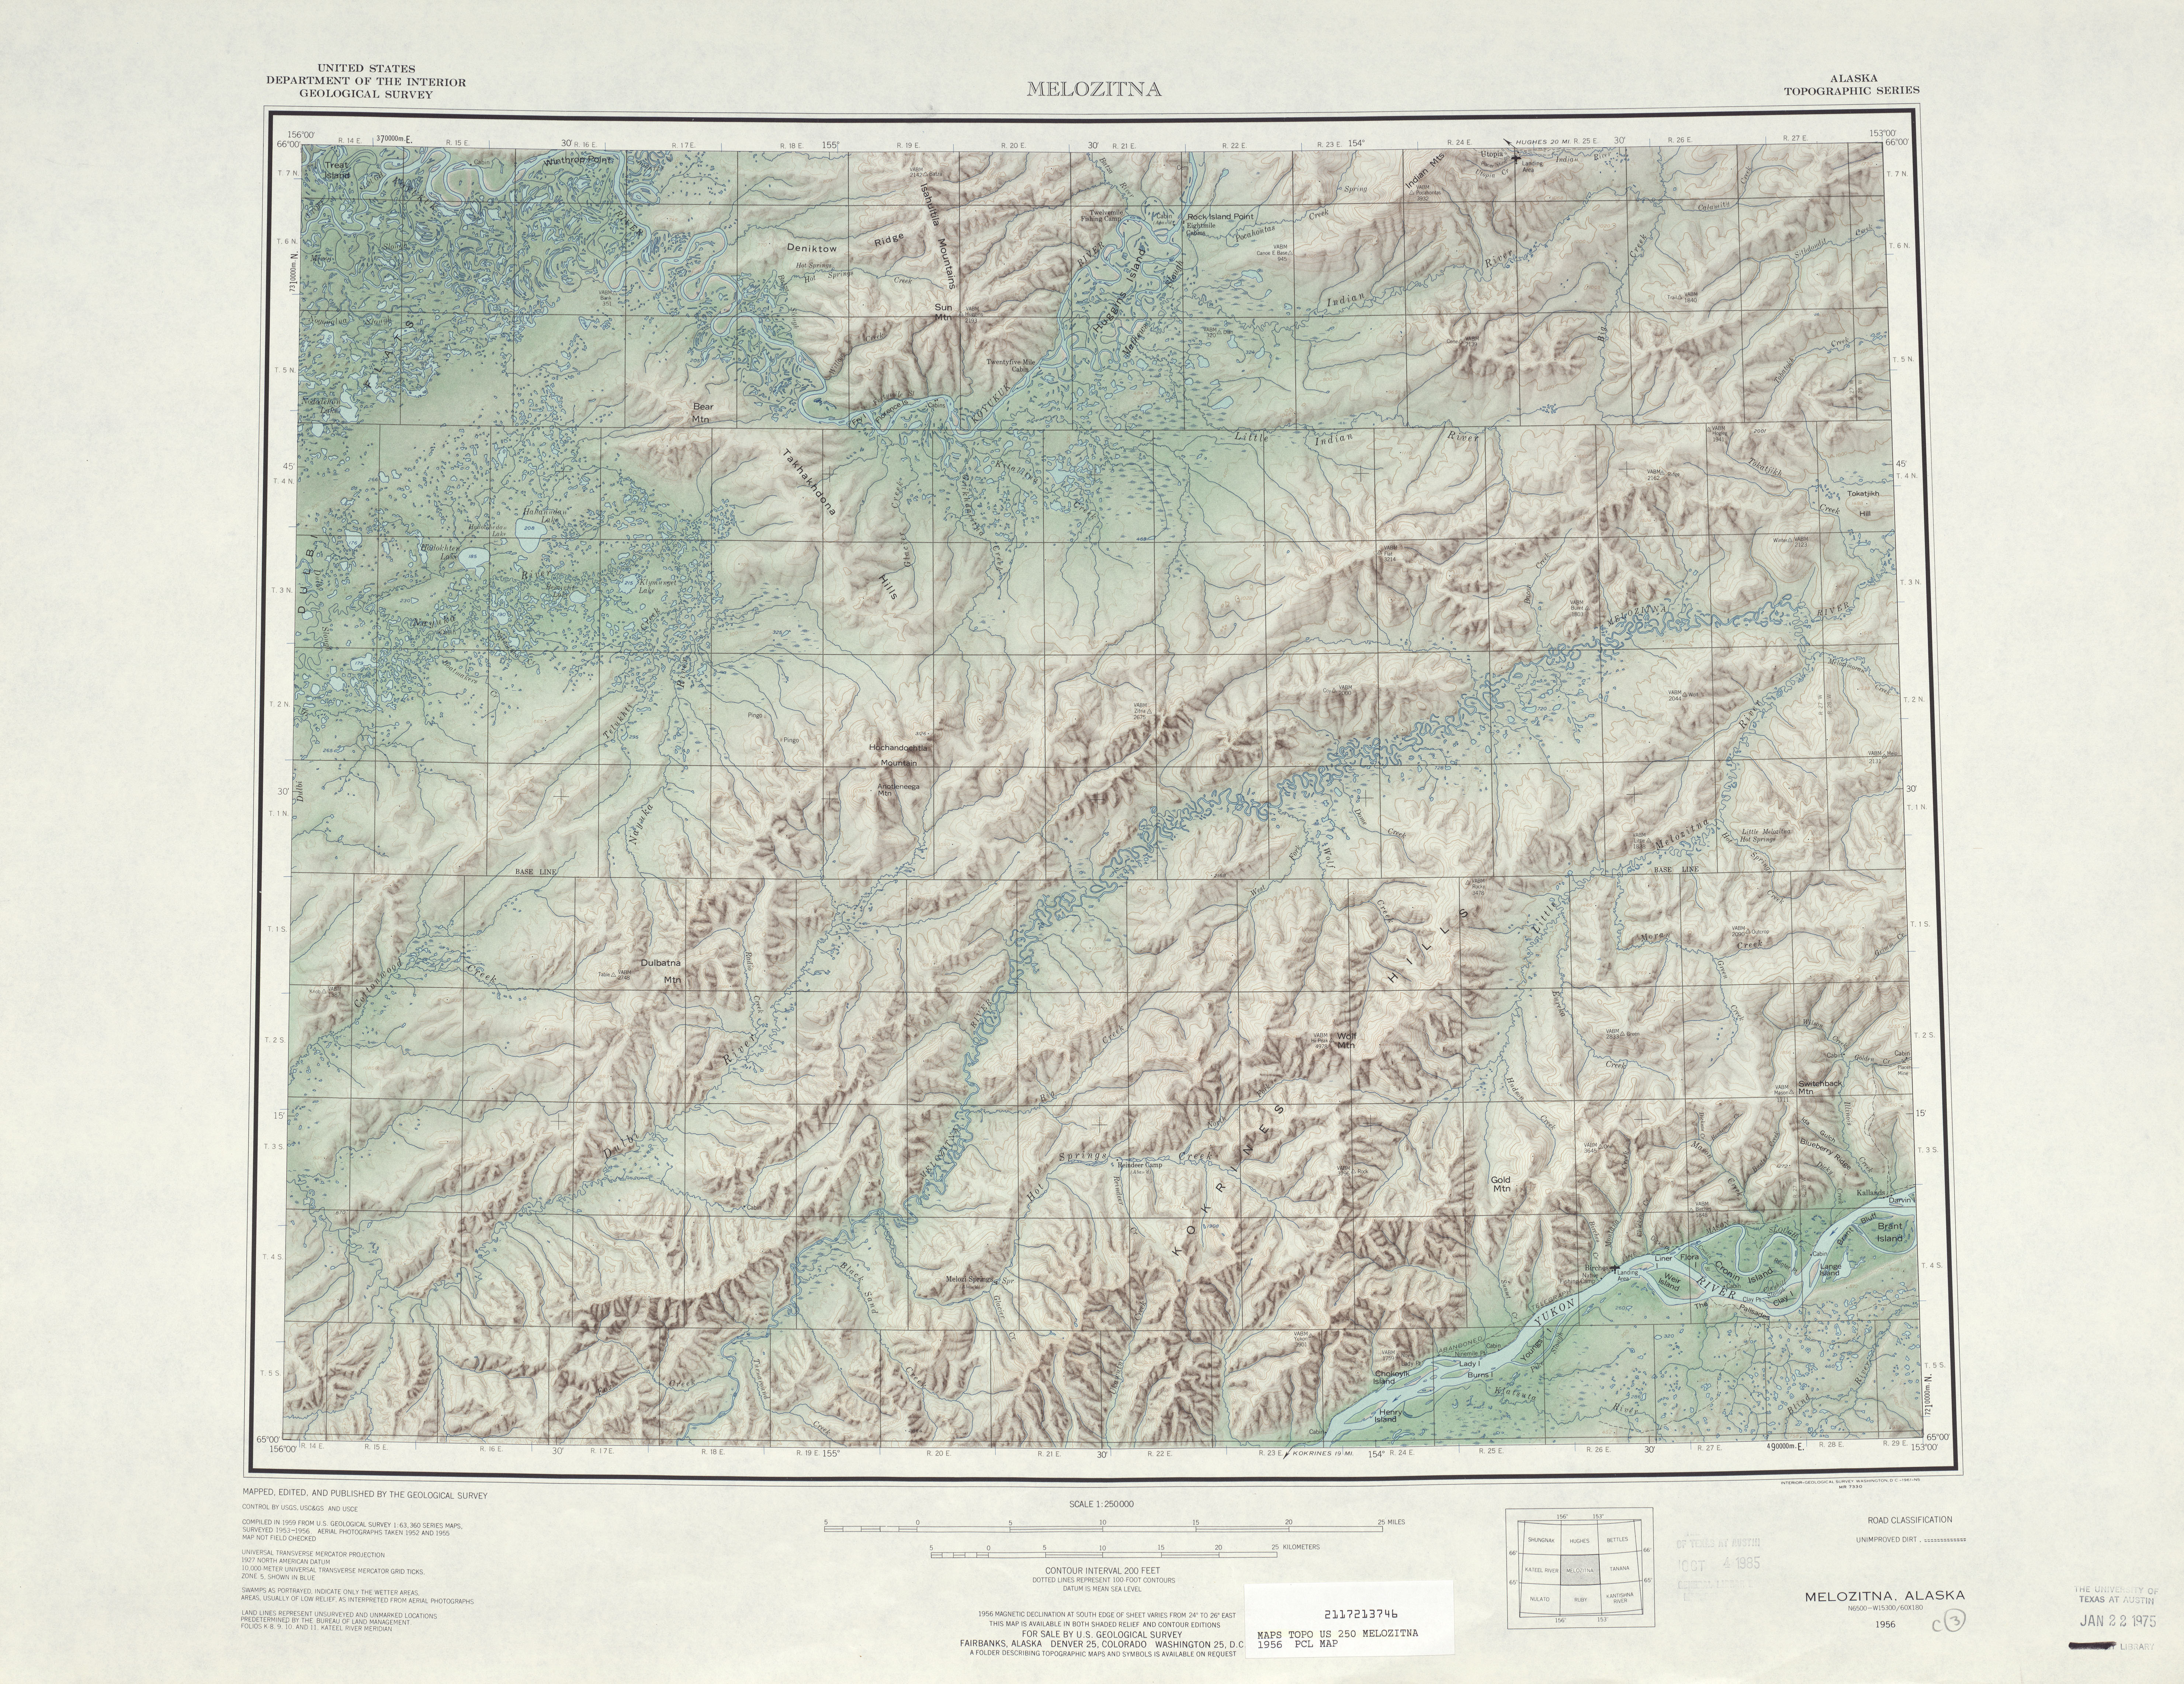 Melozitna Shaded Relief Map Sheet, United States 1956